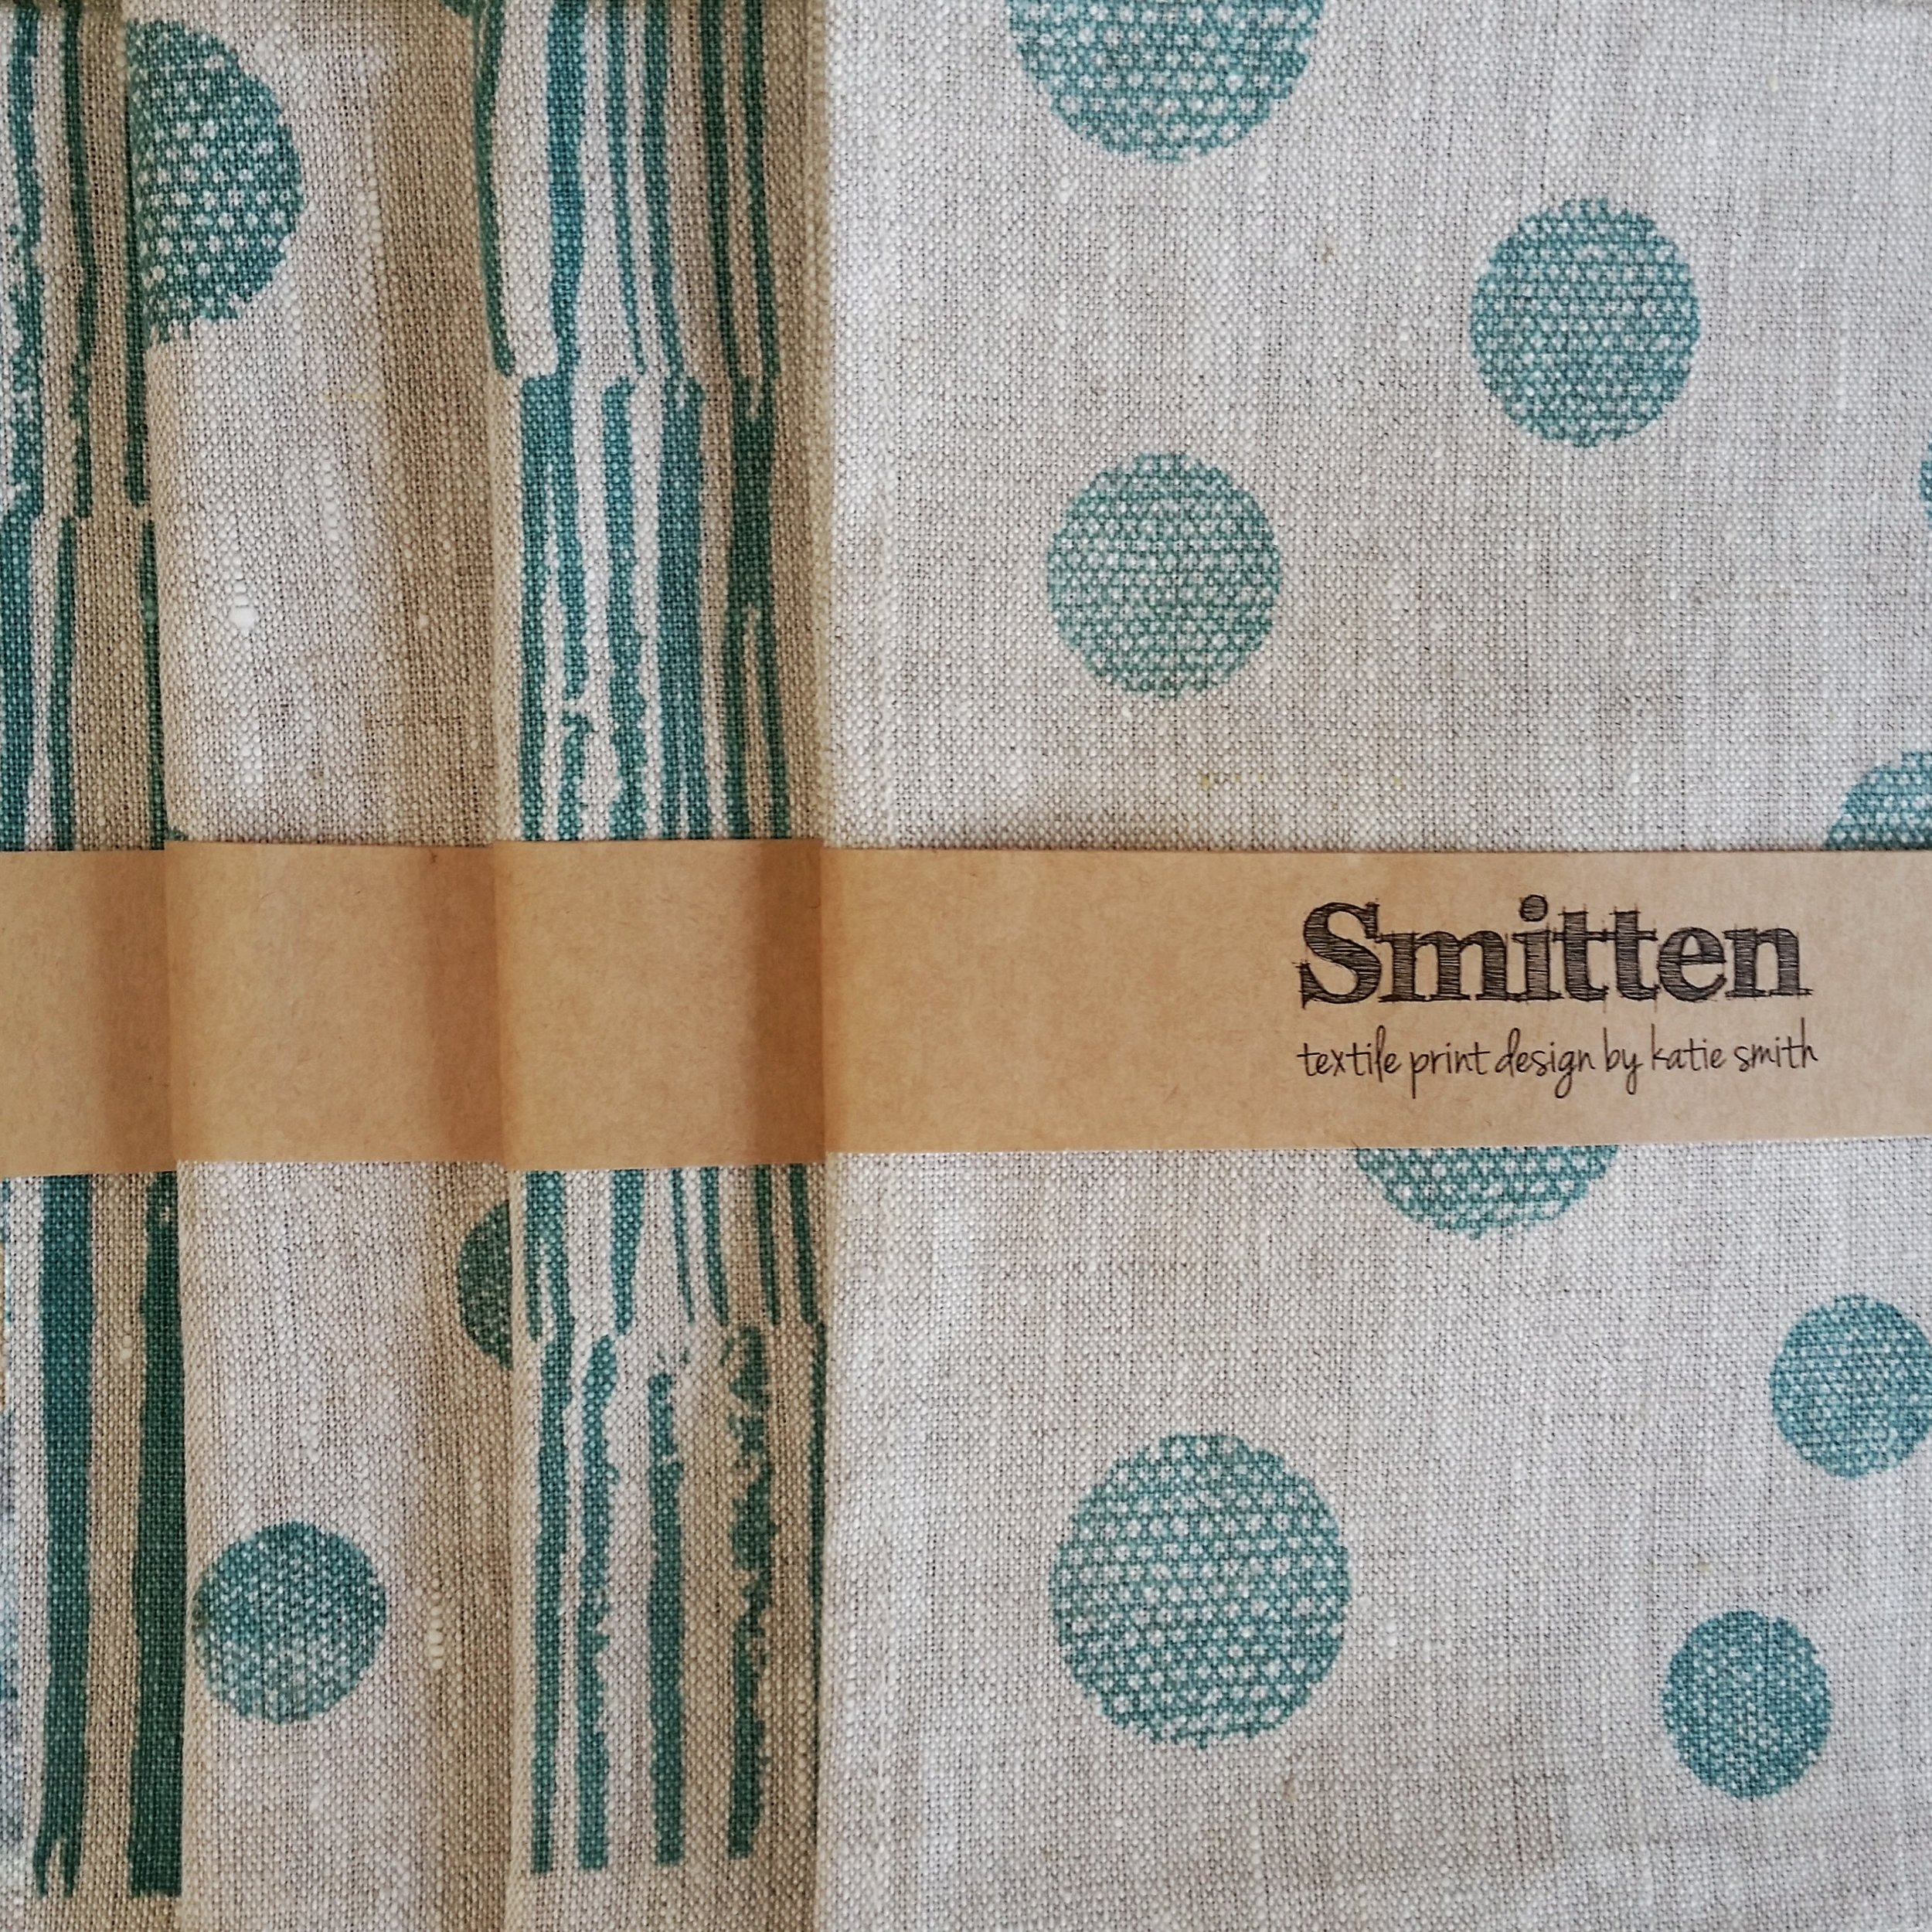 Smitten Design - Hand screen-printed linen tea towels